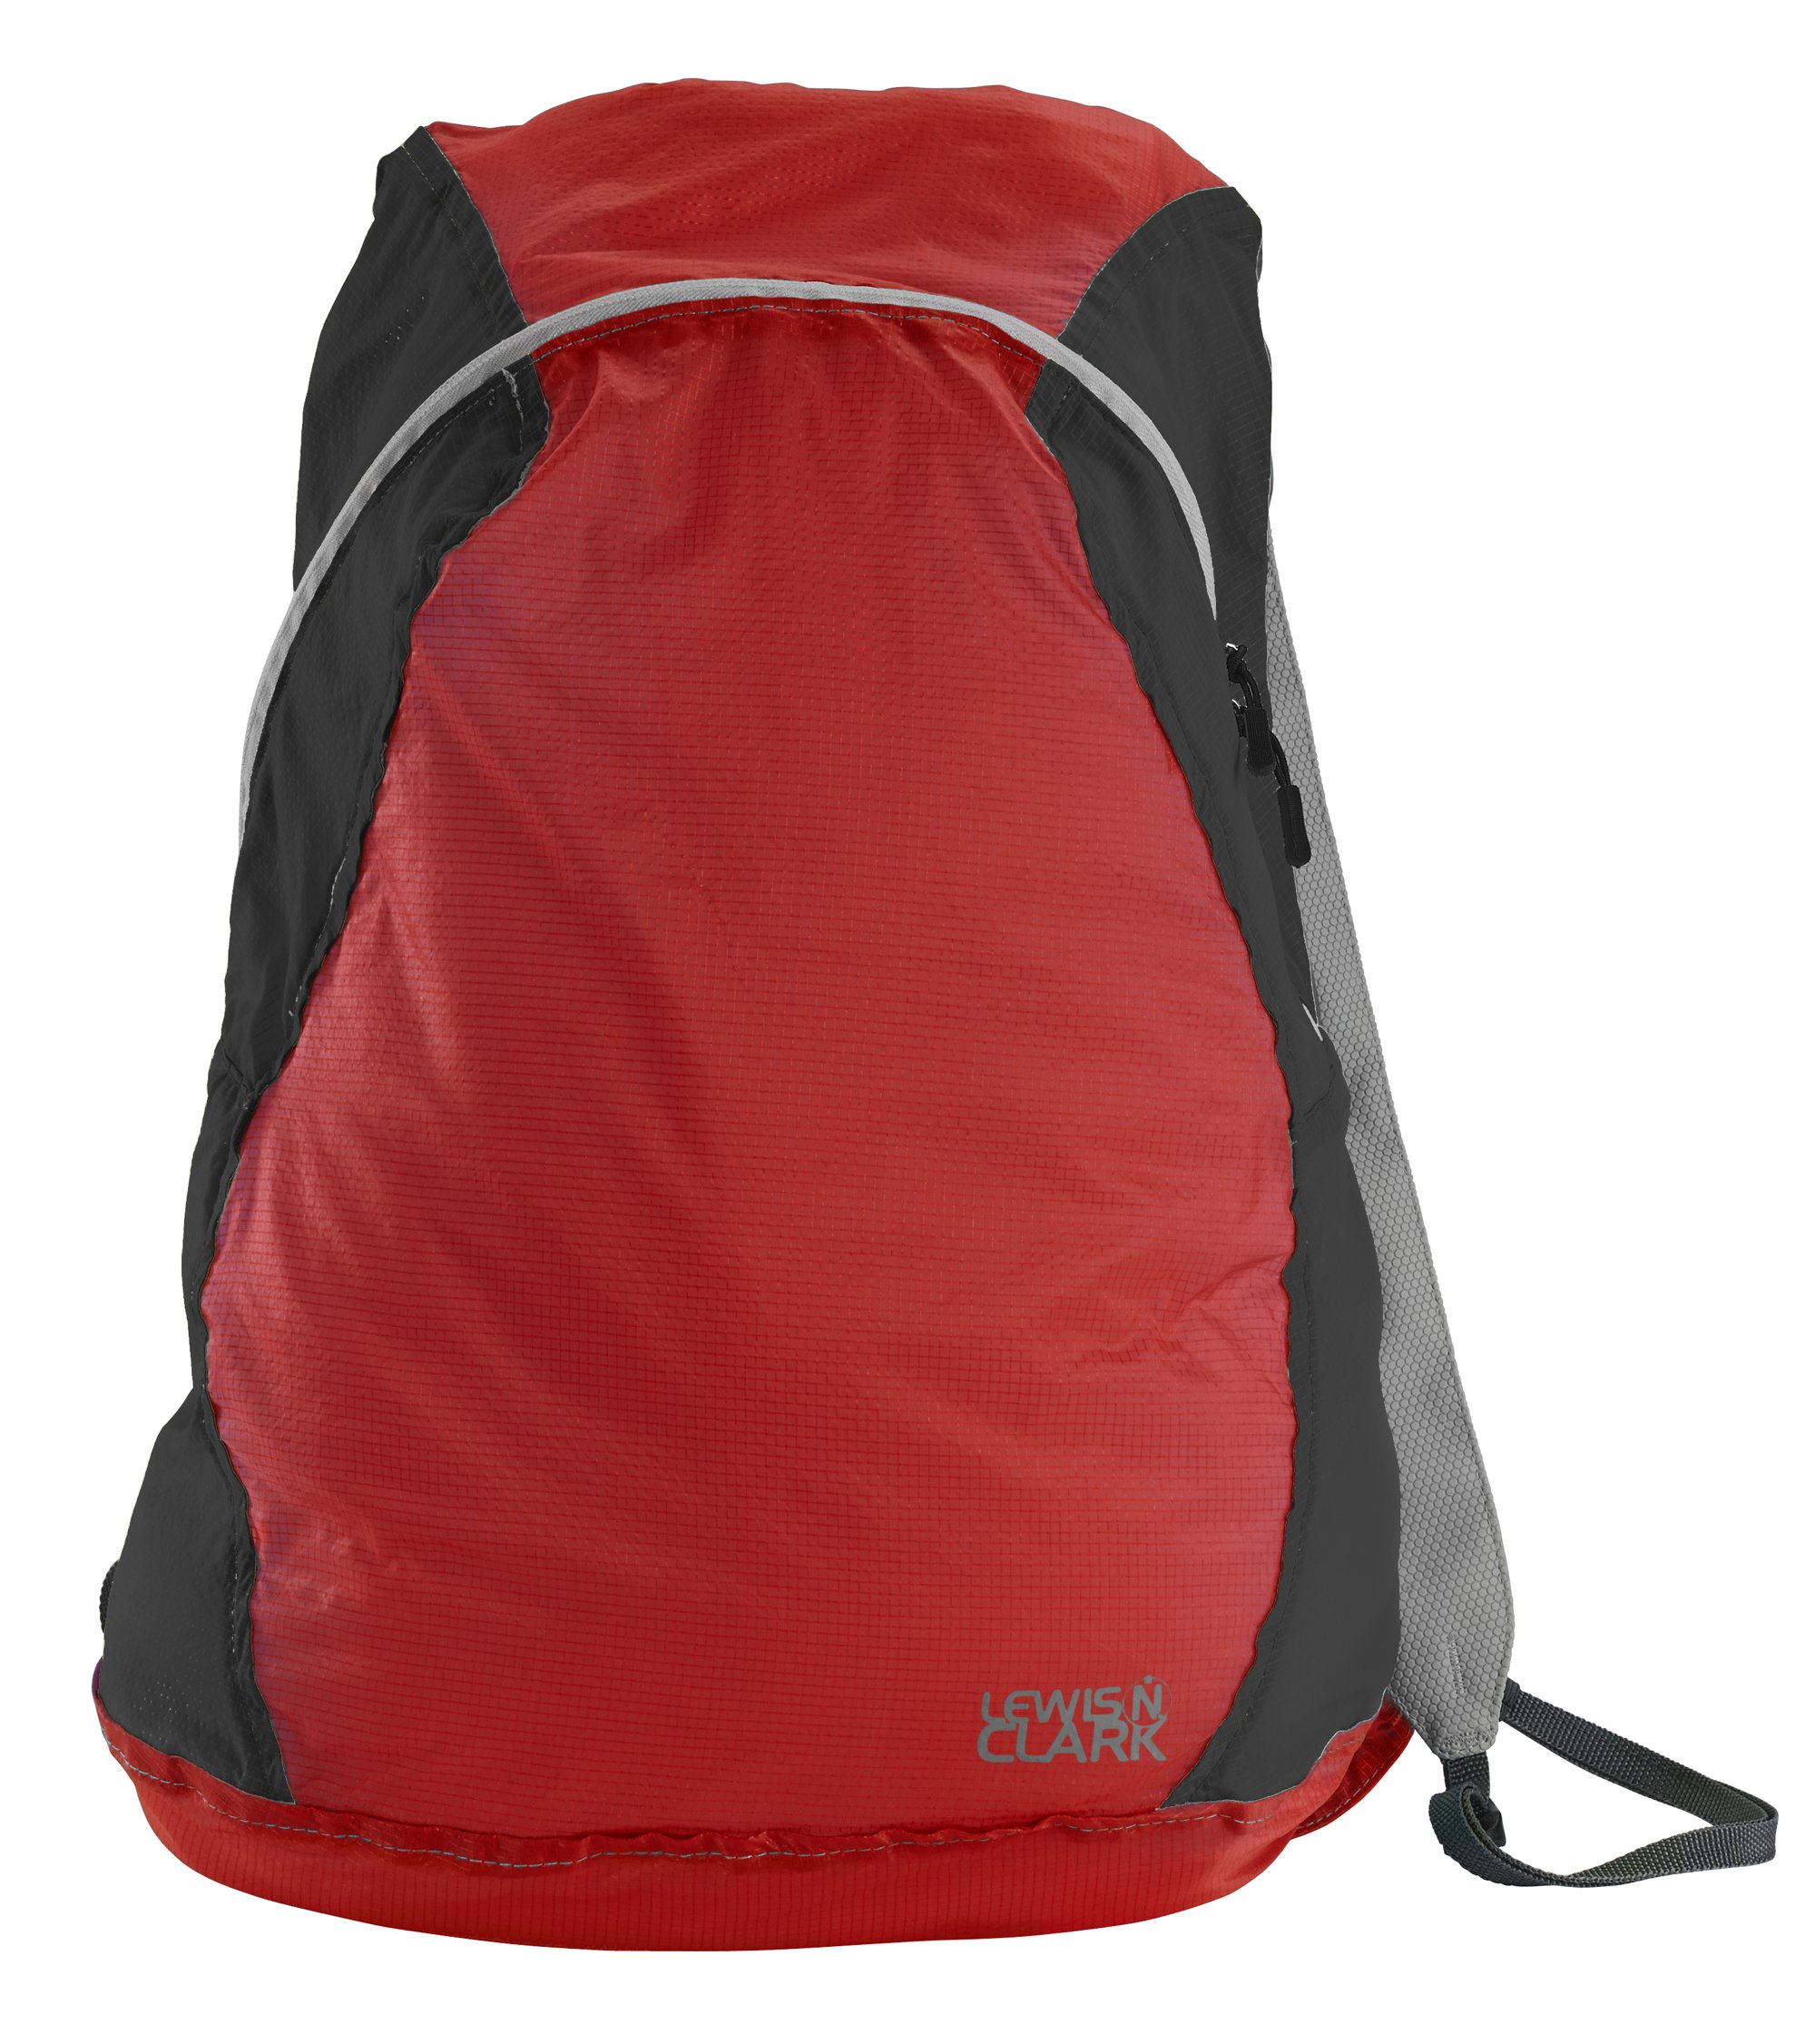 Lewis N Clark ElectroLight Multipurpose Packable Lightweight Travel Backpack, Red/Charcoal, One Size